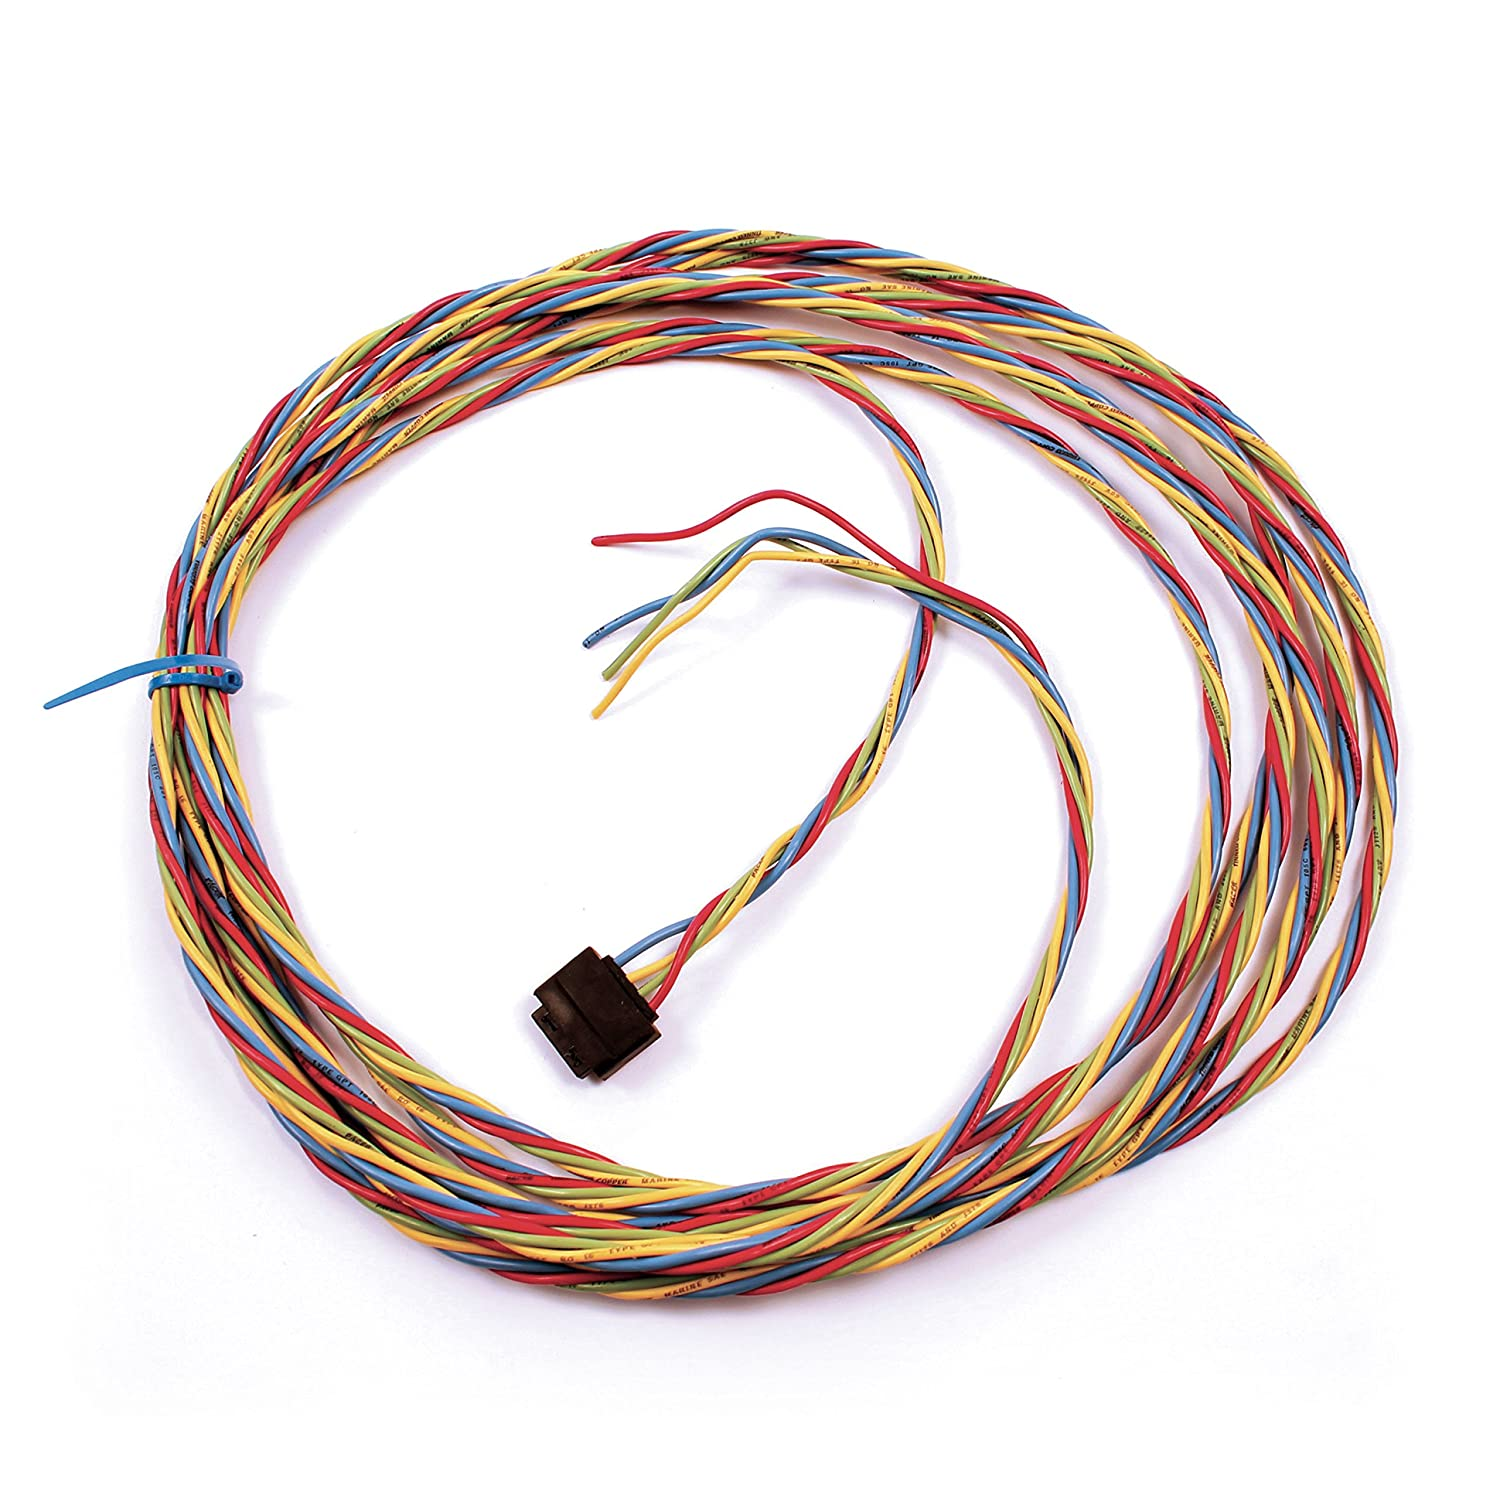 Amazon.com: Bennett Marine 3004.0152 WH100022 Wire Harness - 22': Automotive